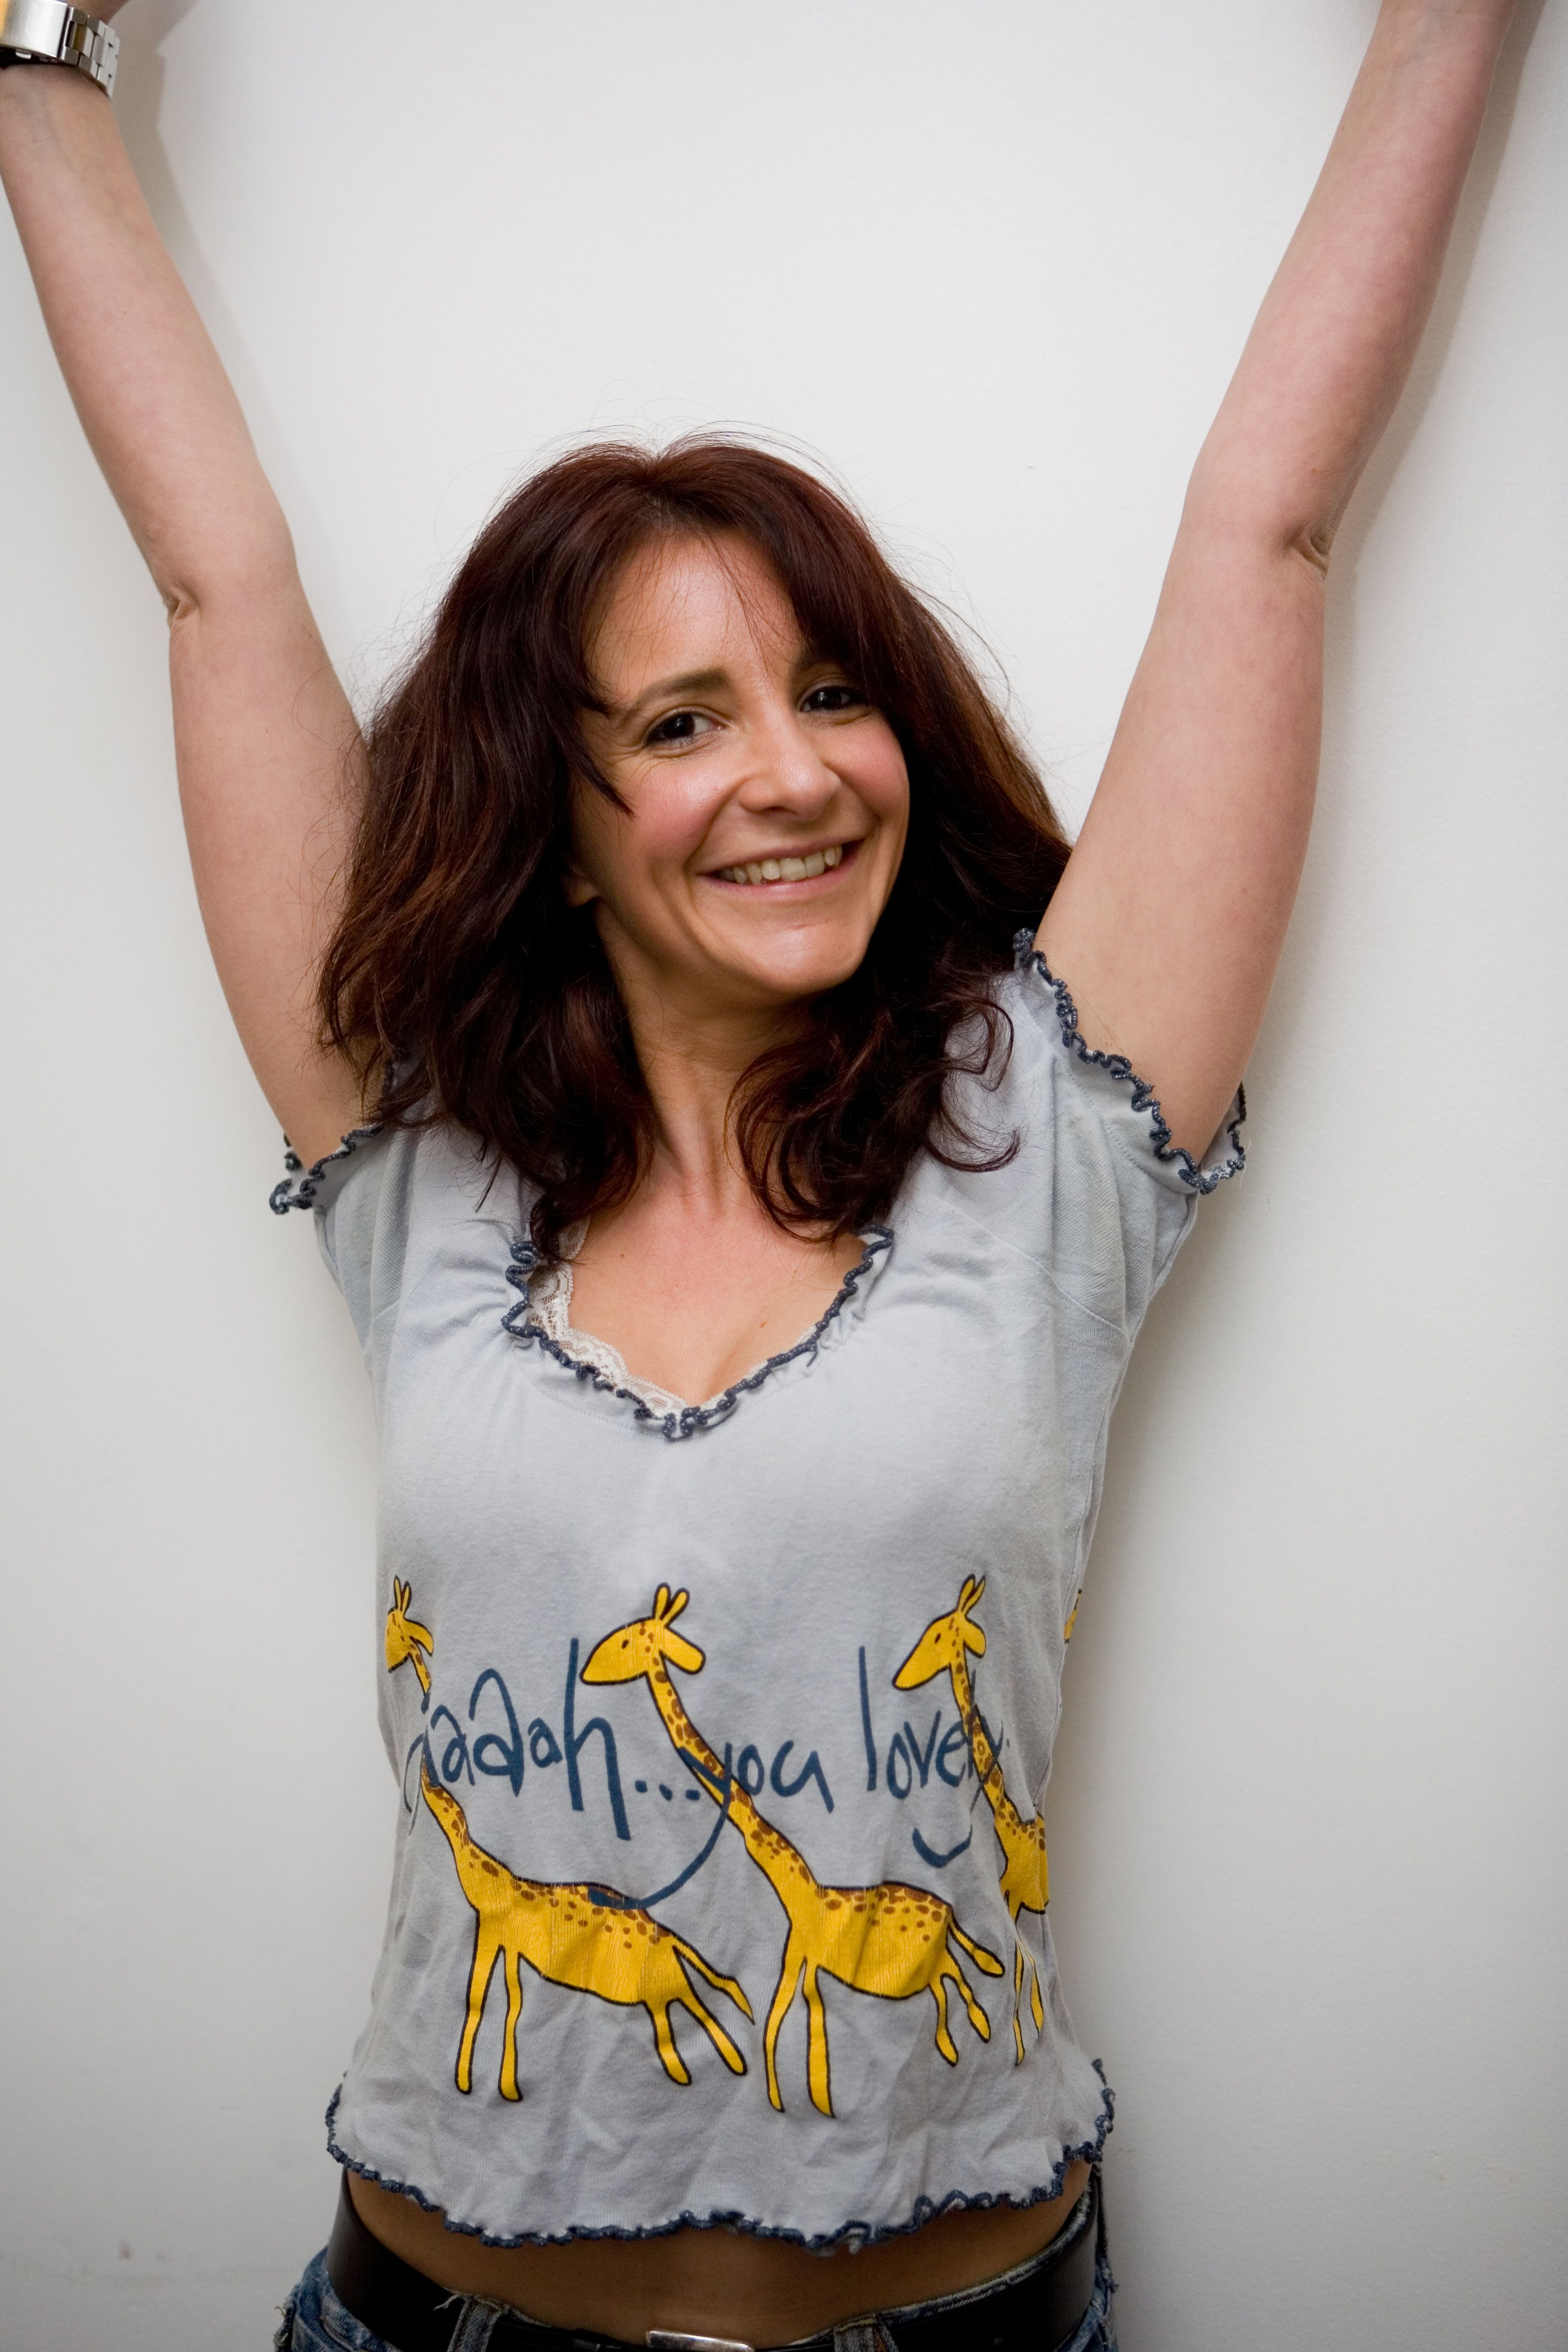 lucy porter hot - Google Search | Lucy Porter | Pinterest ...